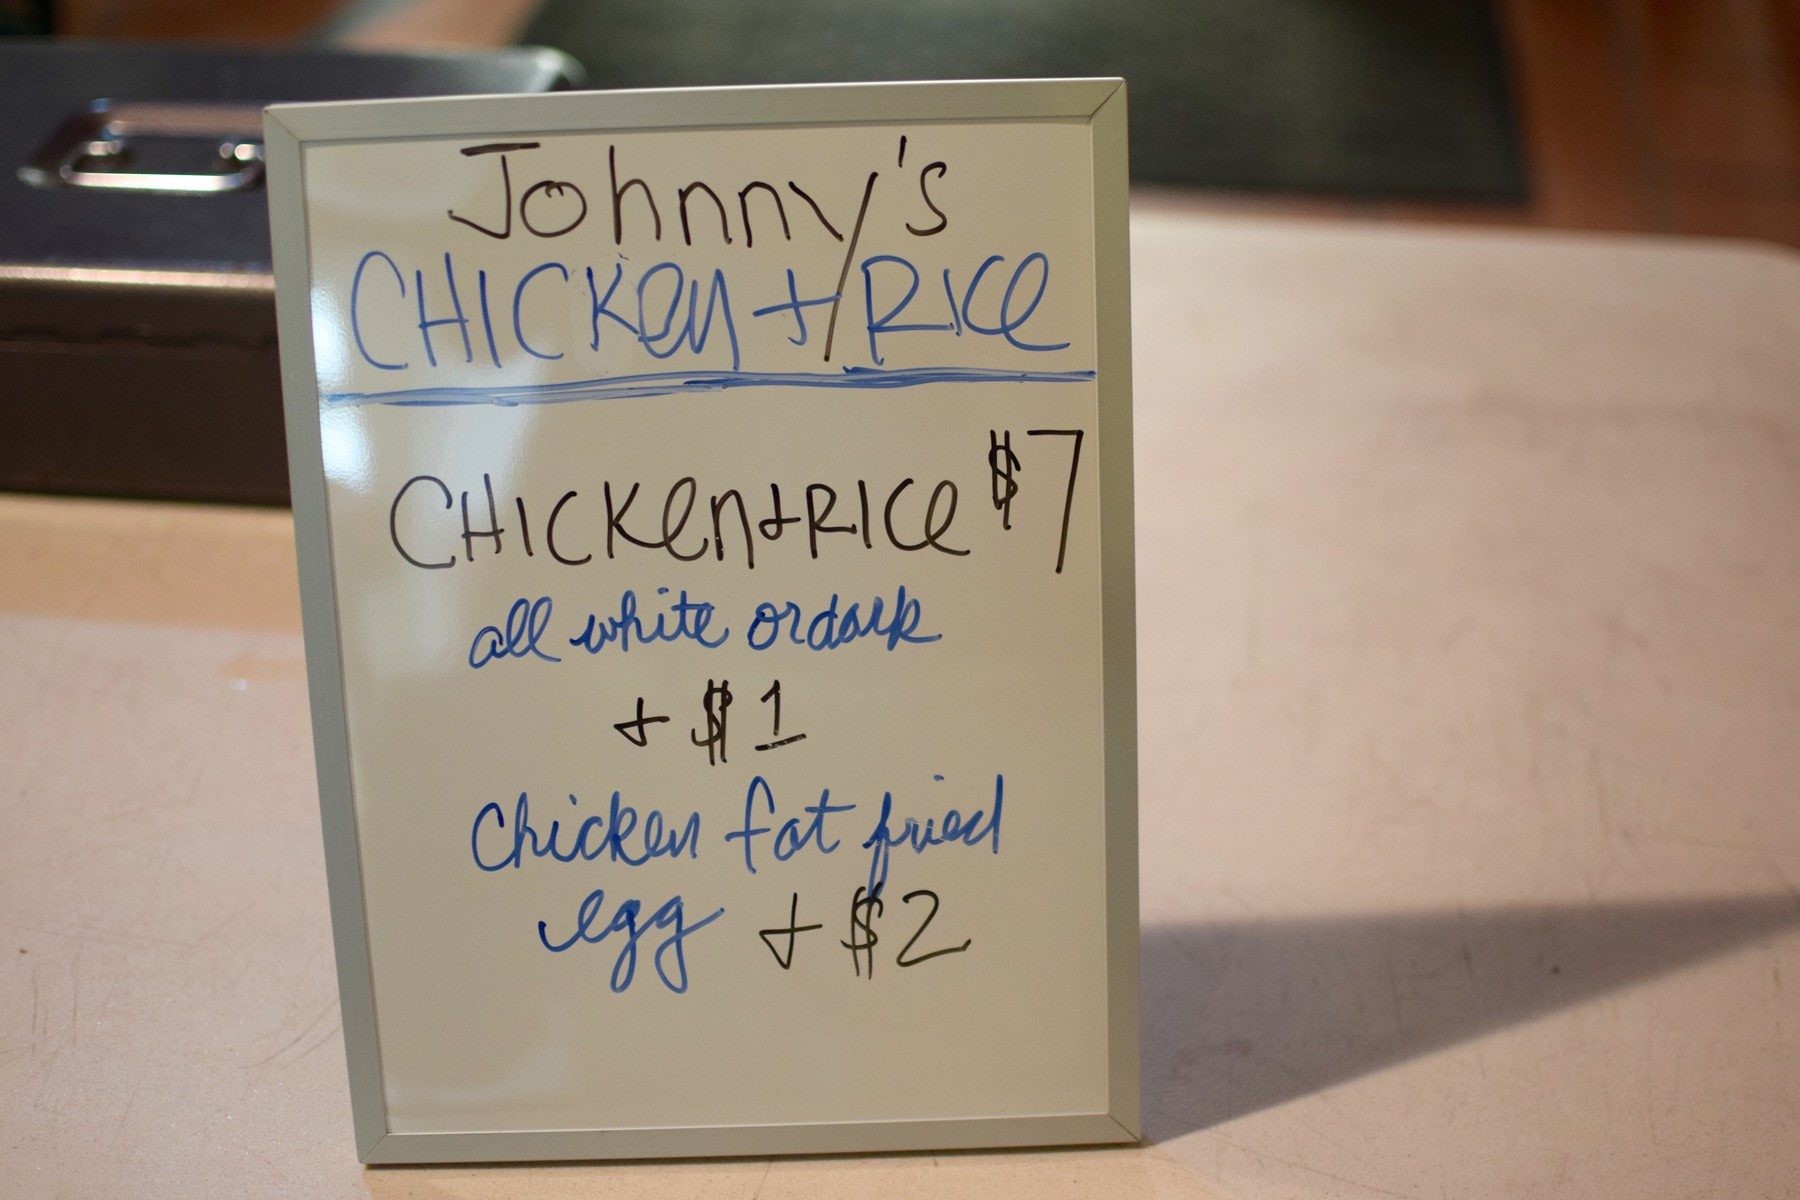 Johnny's_chicken_and_rice_sign - 1